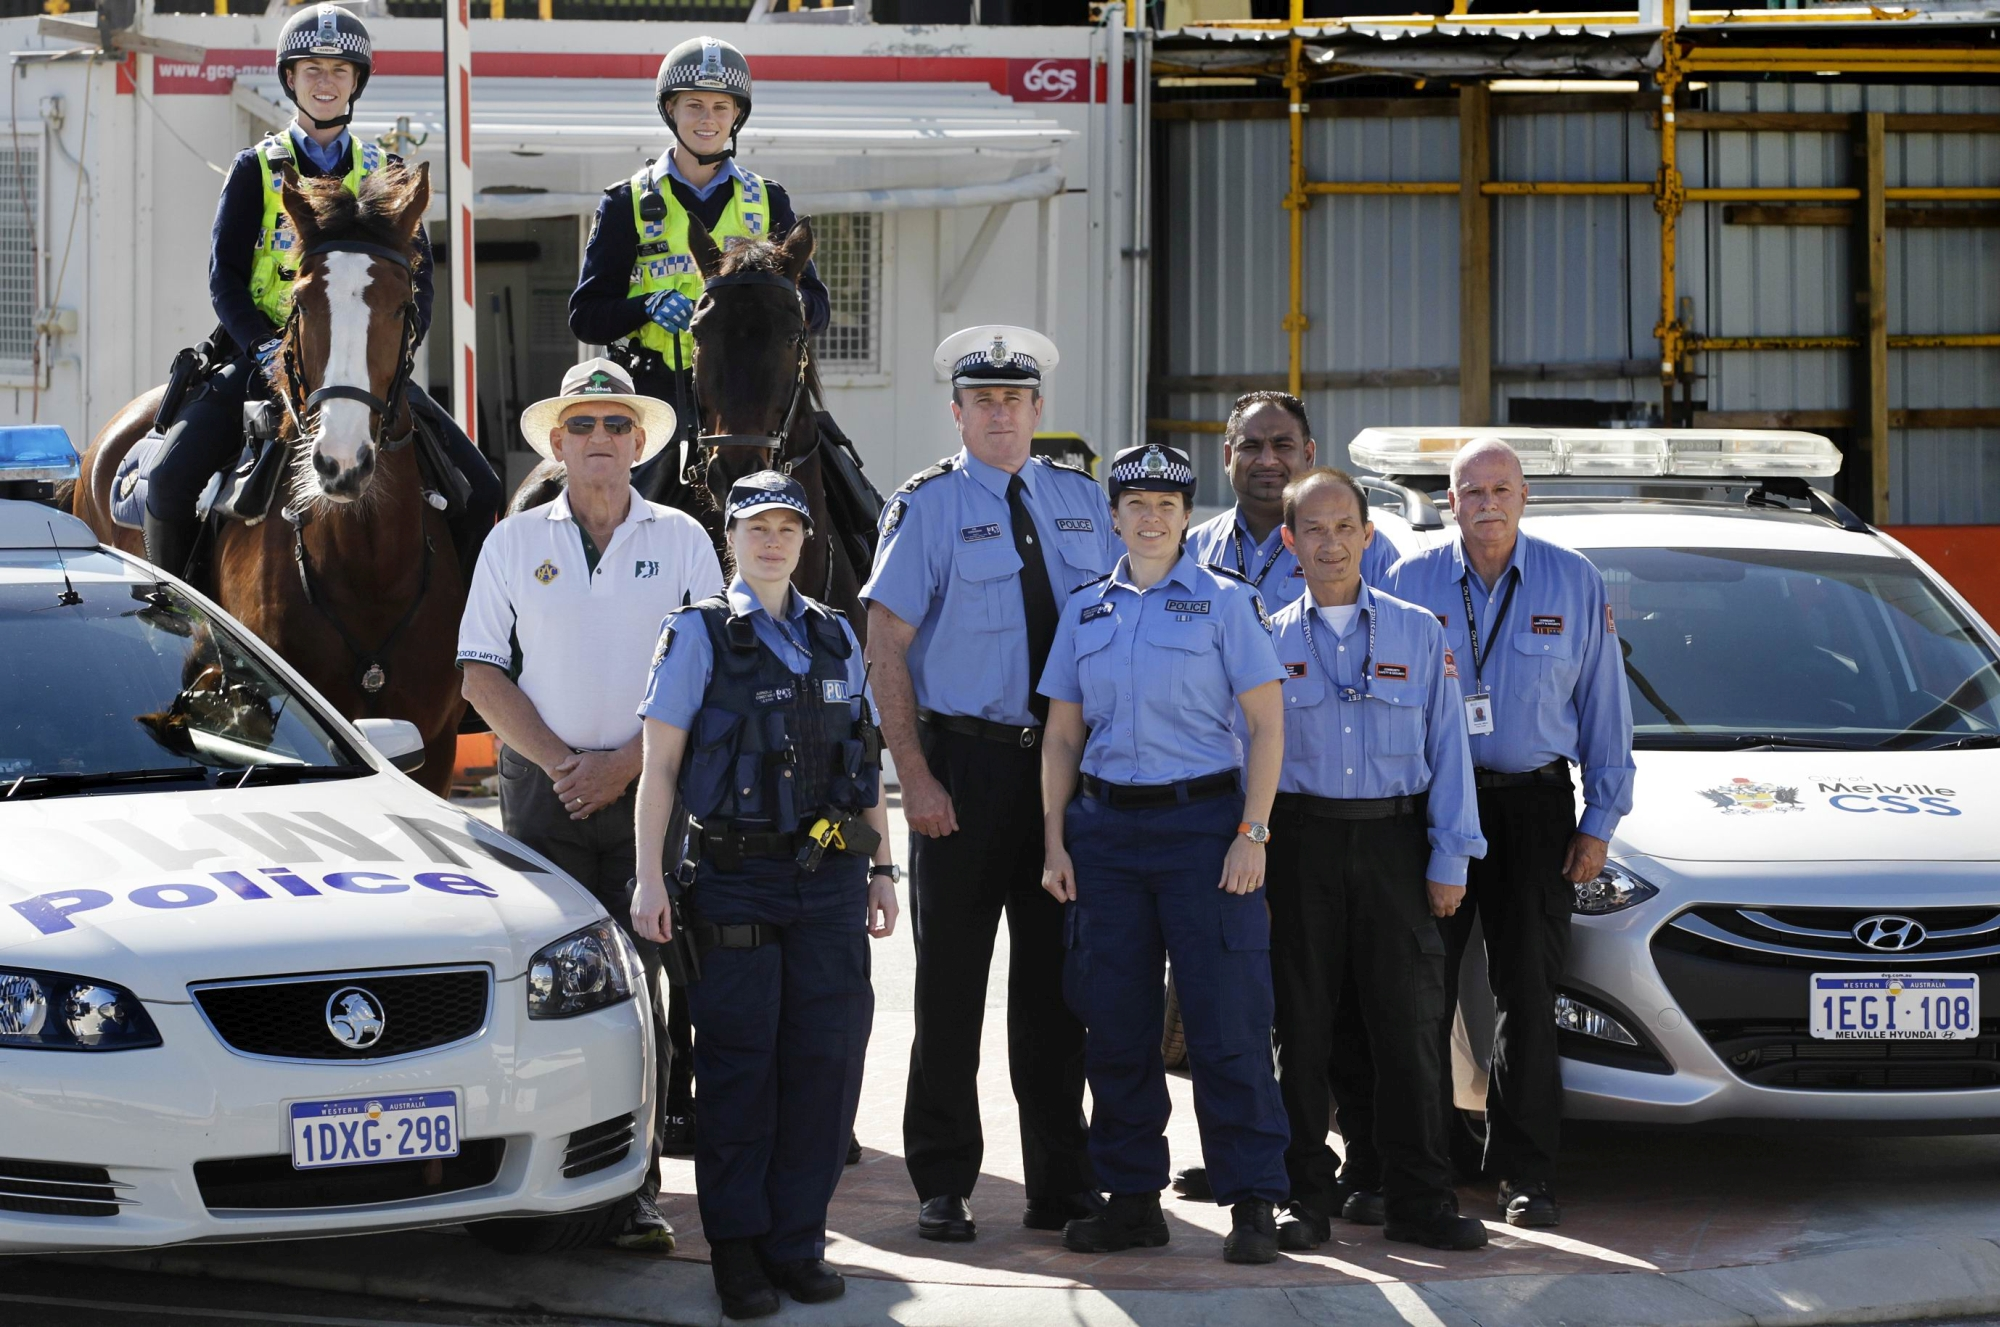 Acting Superintendent Kim Fergusson and Dennis O'Brien of Bateman Neighbourhood Watch with Murdoch police, mounted police and City of Melville CSS officers. Picture: Martin Kennealey www.communitypix.com.au d404343